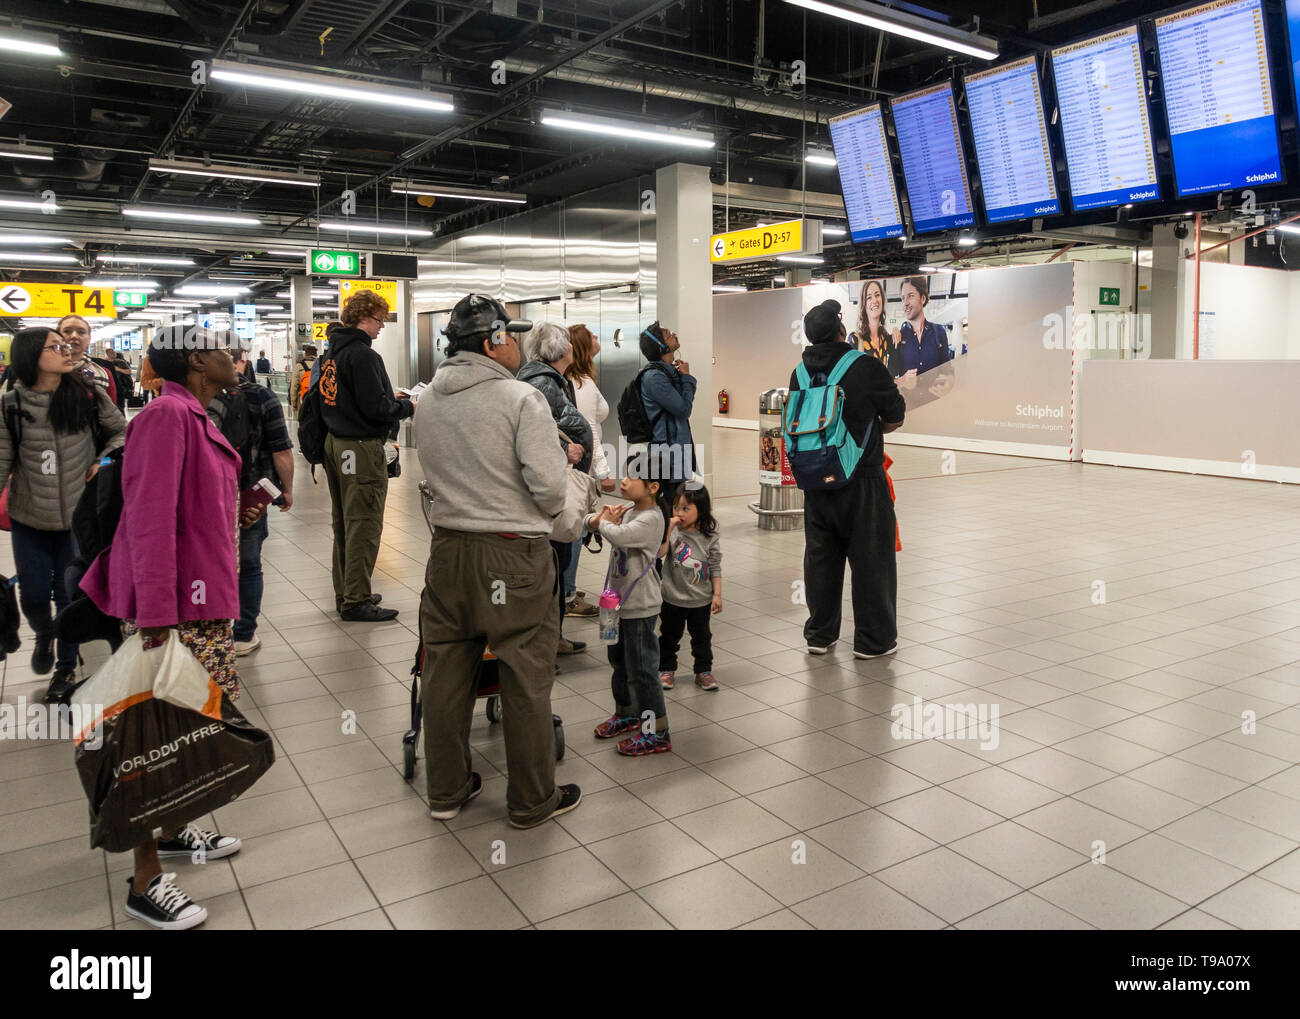 Passengers checking the departures board at Schiphol Airport, Amsterdam, the Netherlands. Travellers, passengers, travel. - Stock Image